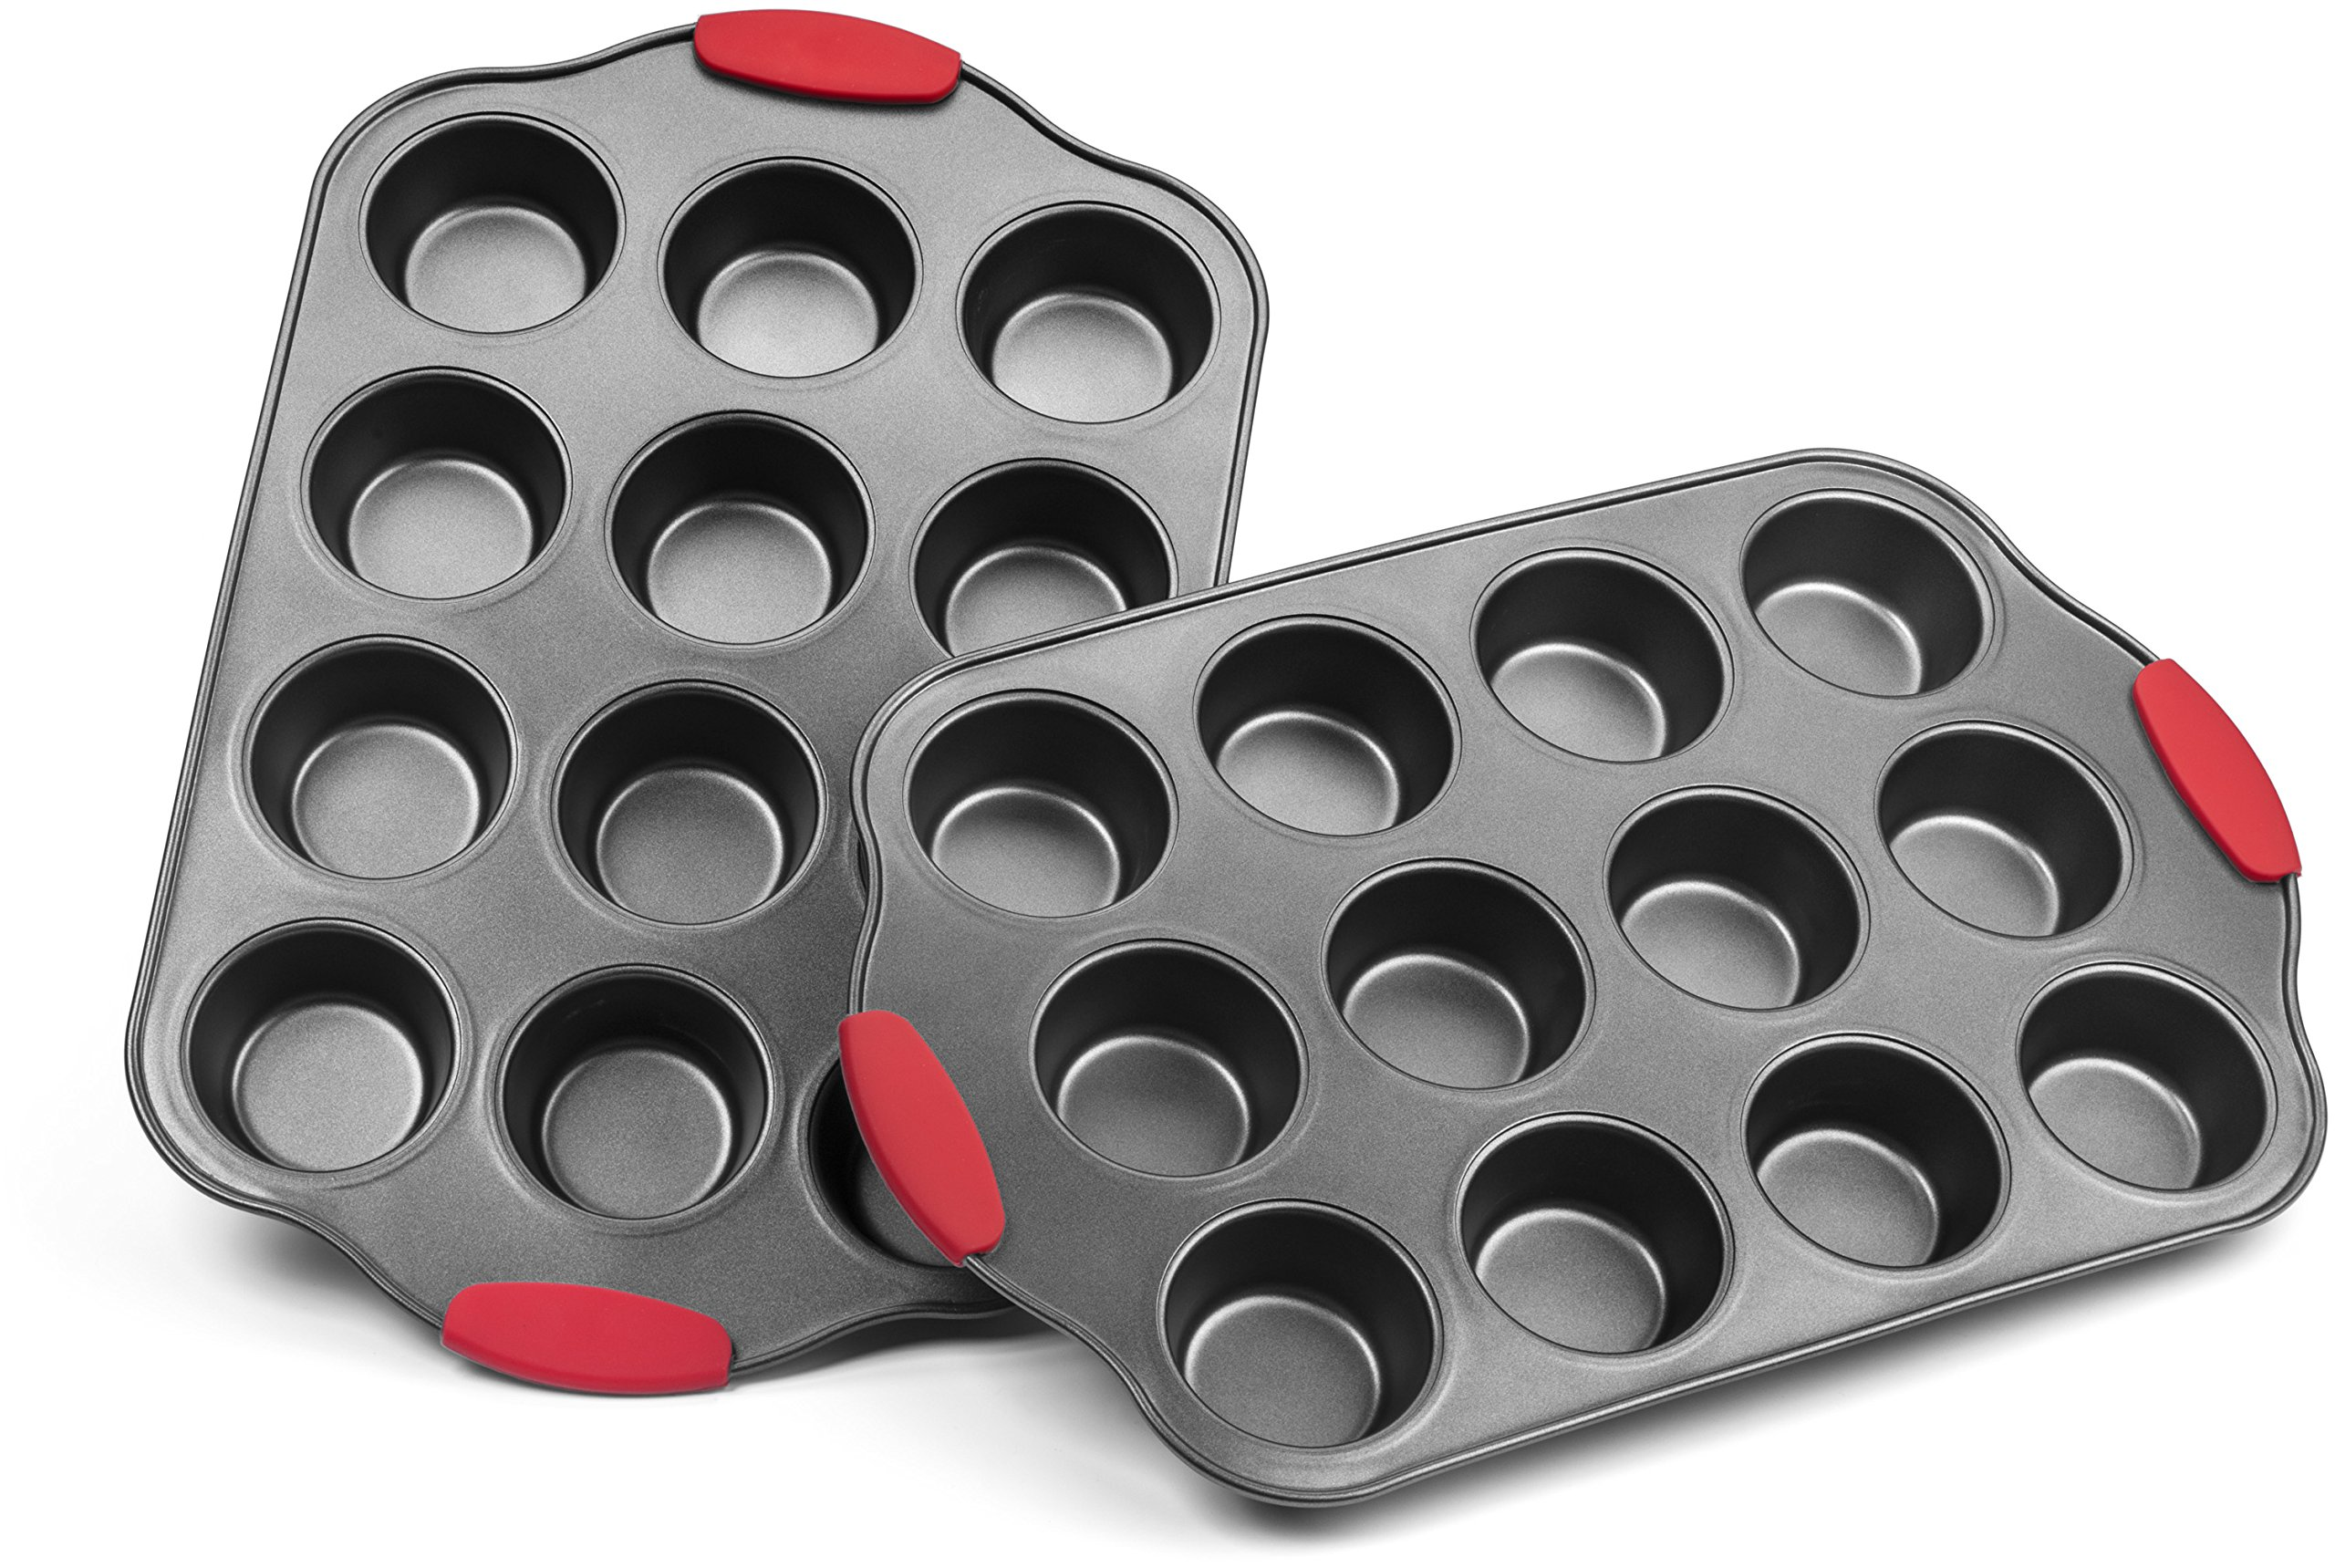 Elite Bakeware Nonstick Muffin Pan with Silicone Handles, Cupcake Maker, 2 Pans